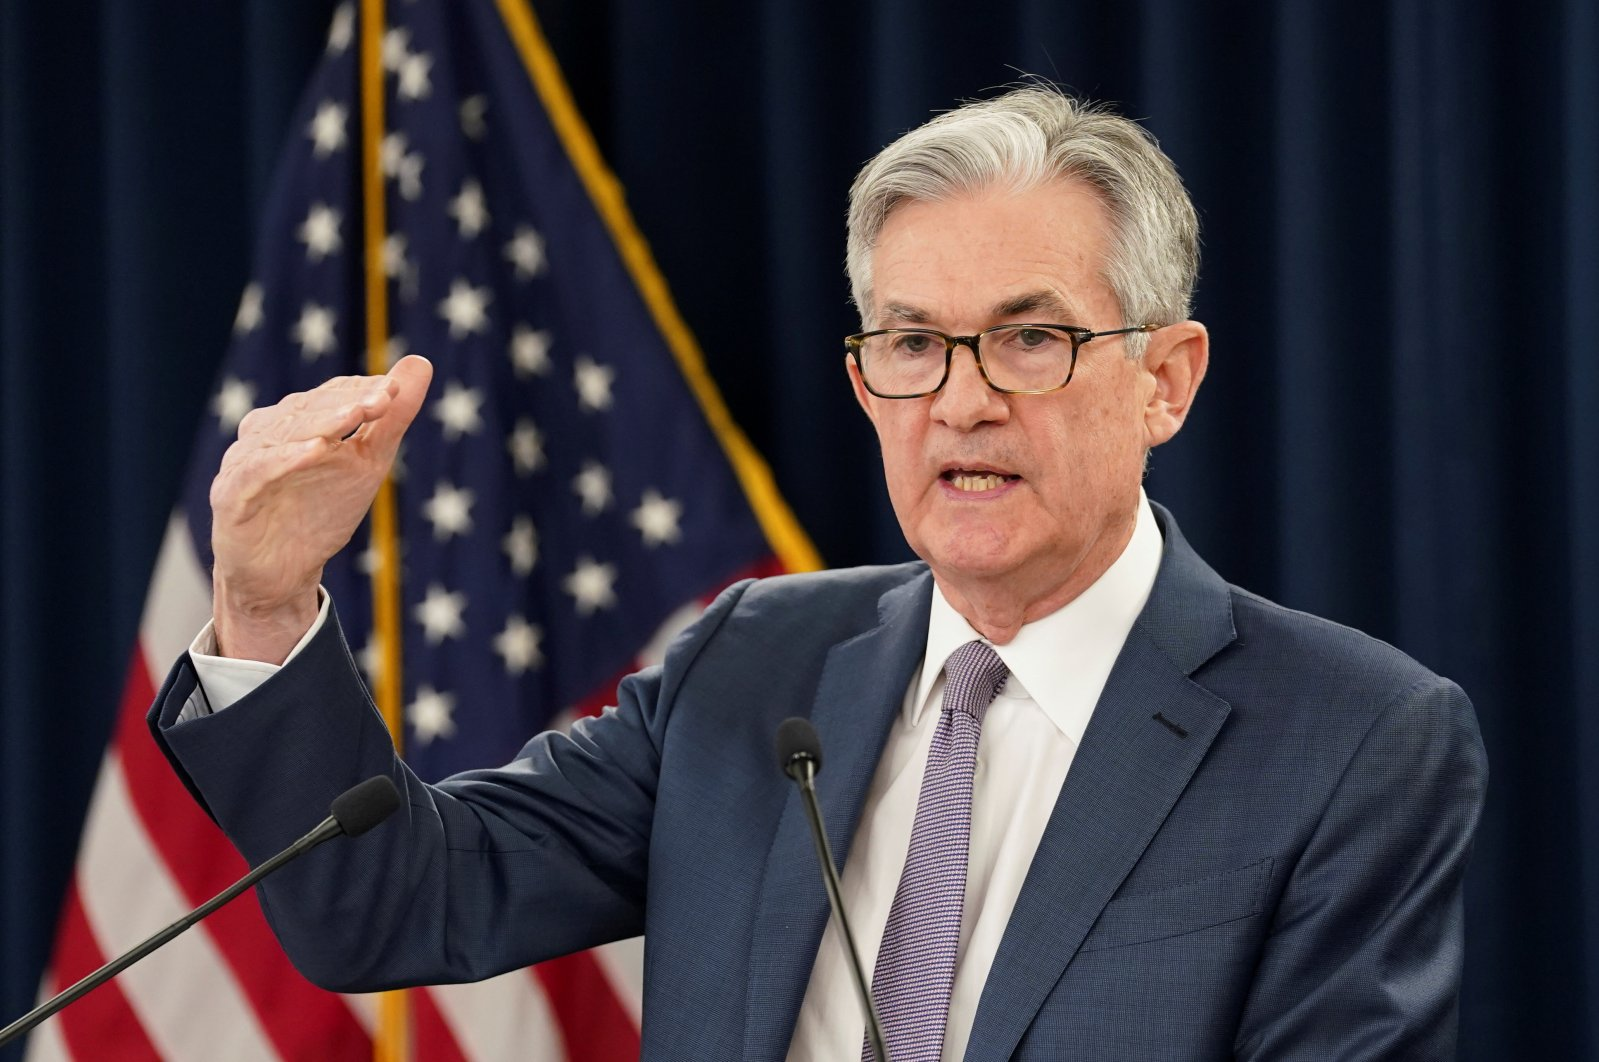 U.S. Federal Reserve Chairman Jerome Powell speaks to reporters during a news conference in Washington, D.C., U.S., March 3, 2020. (Reuters Photo)